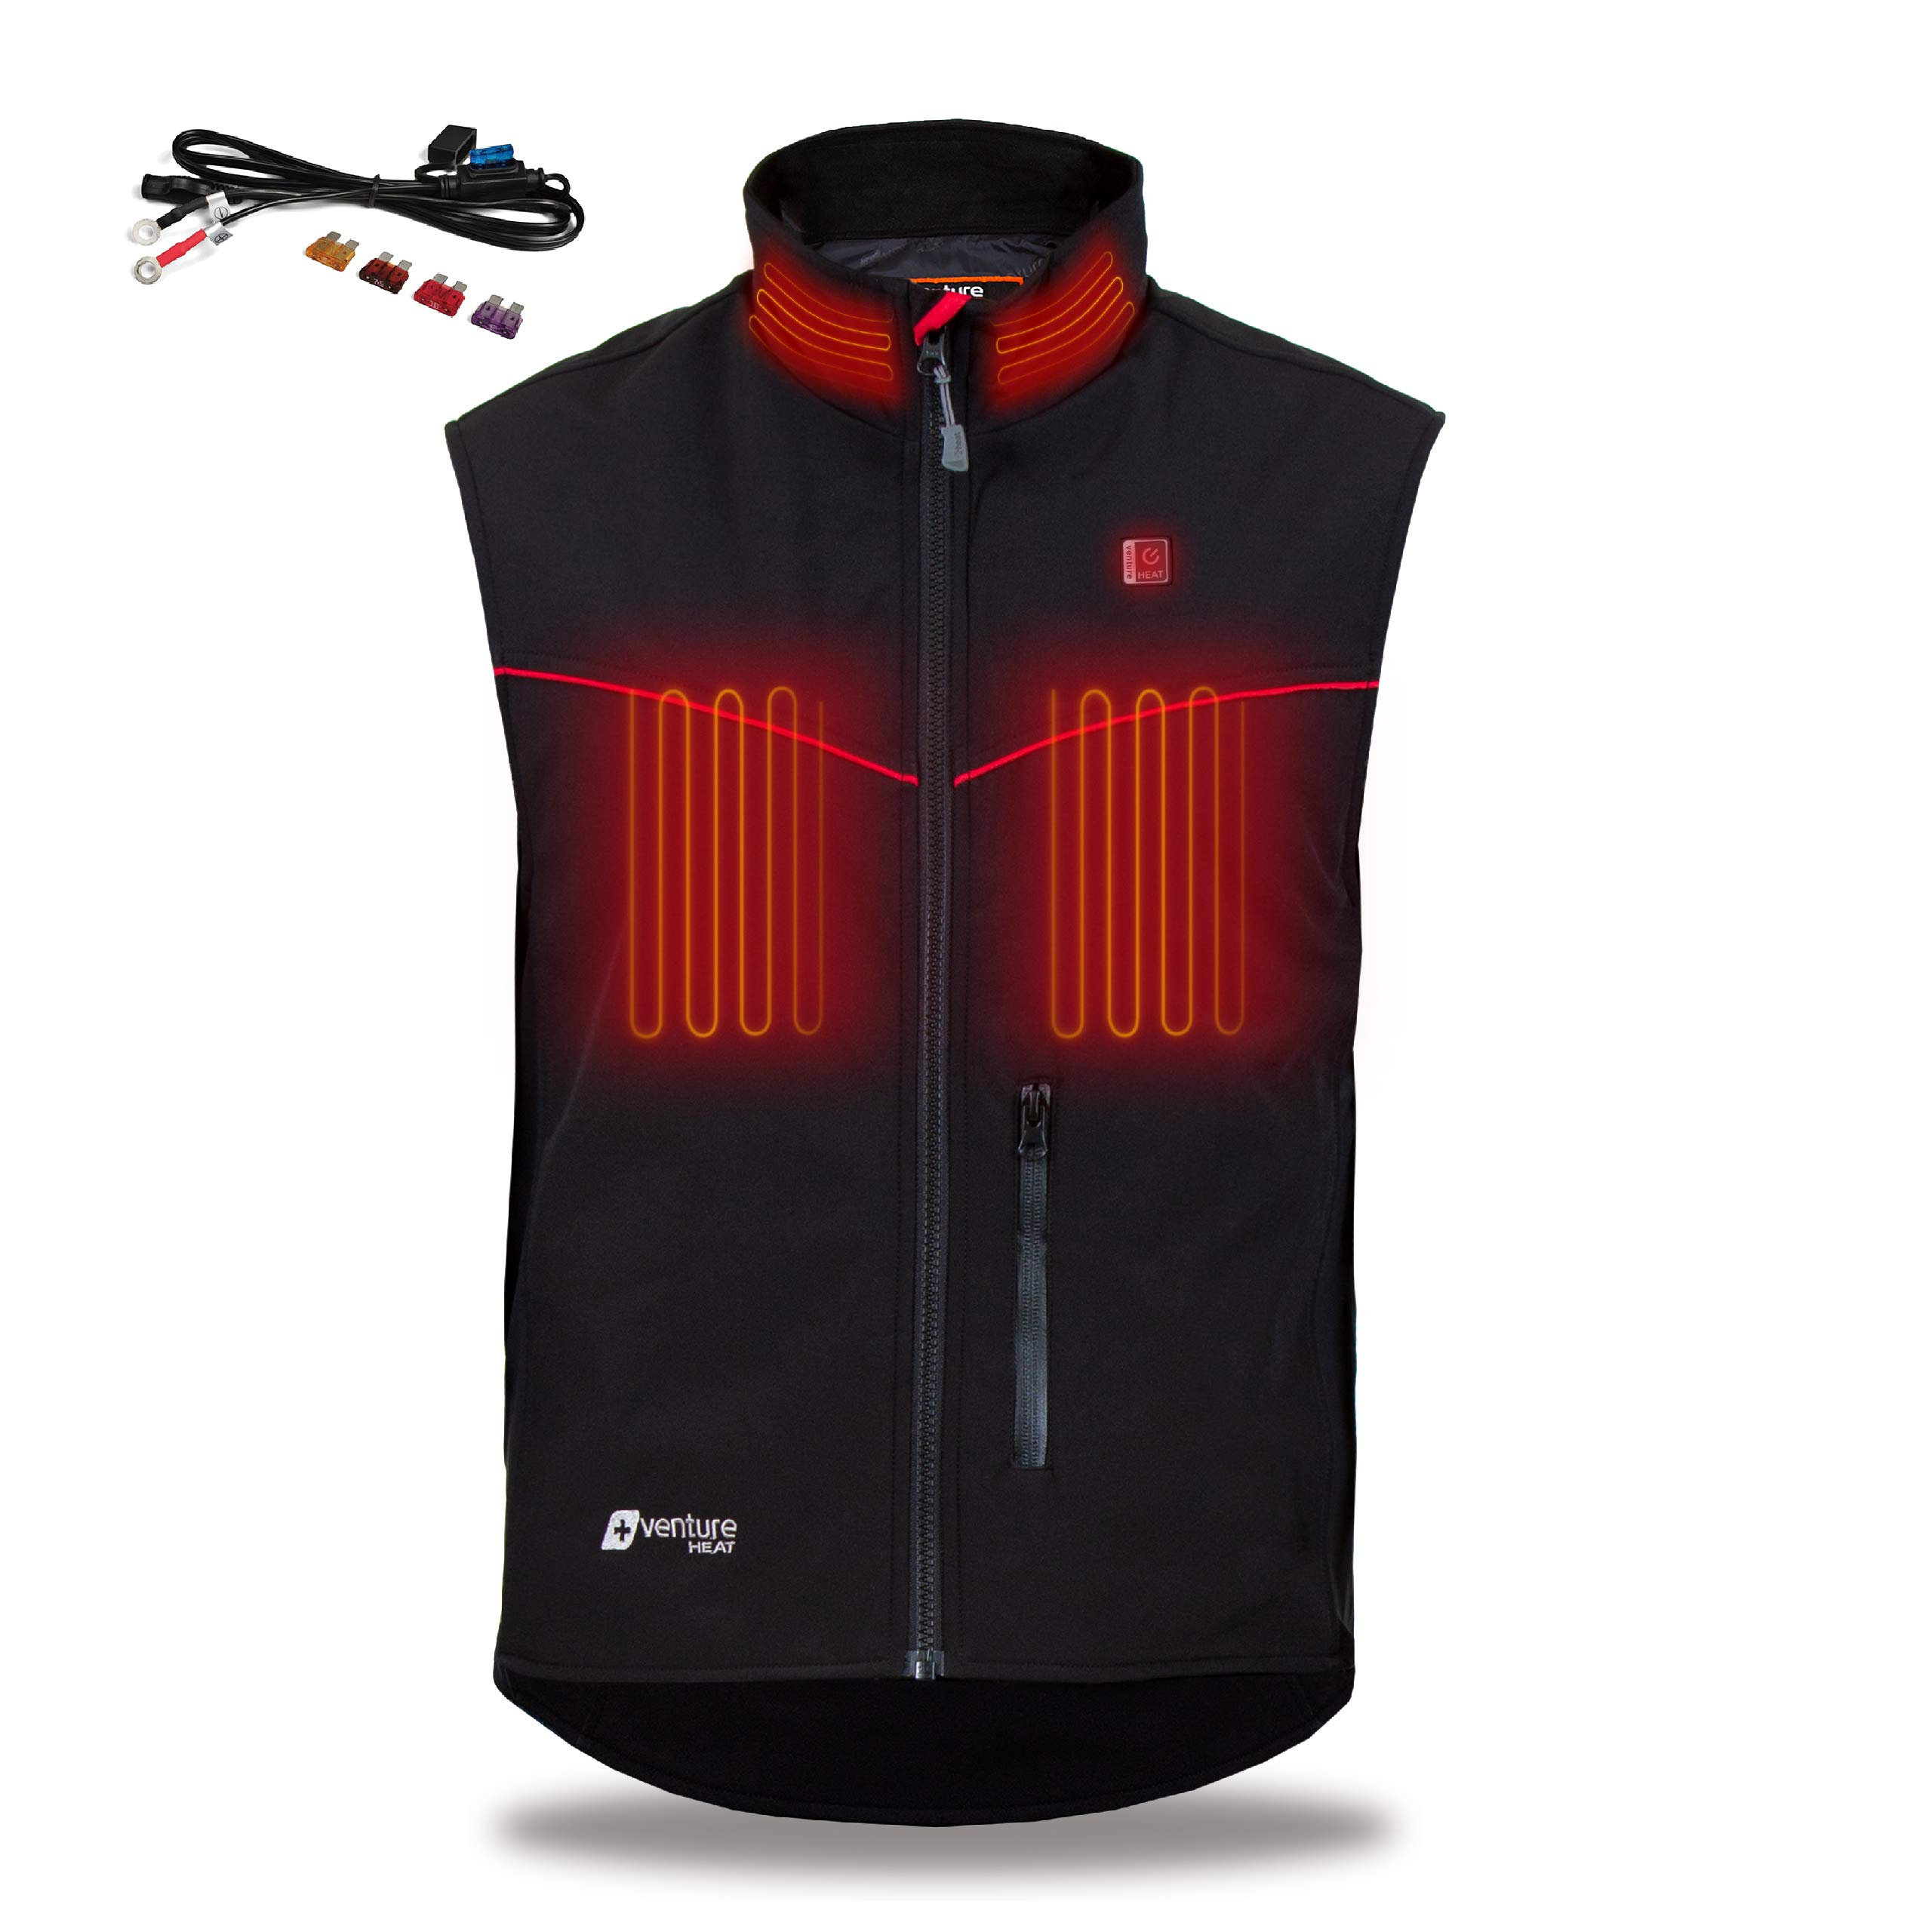 Venture Heat 12V Motorcycle Heated Vest - 15.0W Hybrid Heated Motorcycle Vest for Men and Women